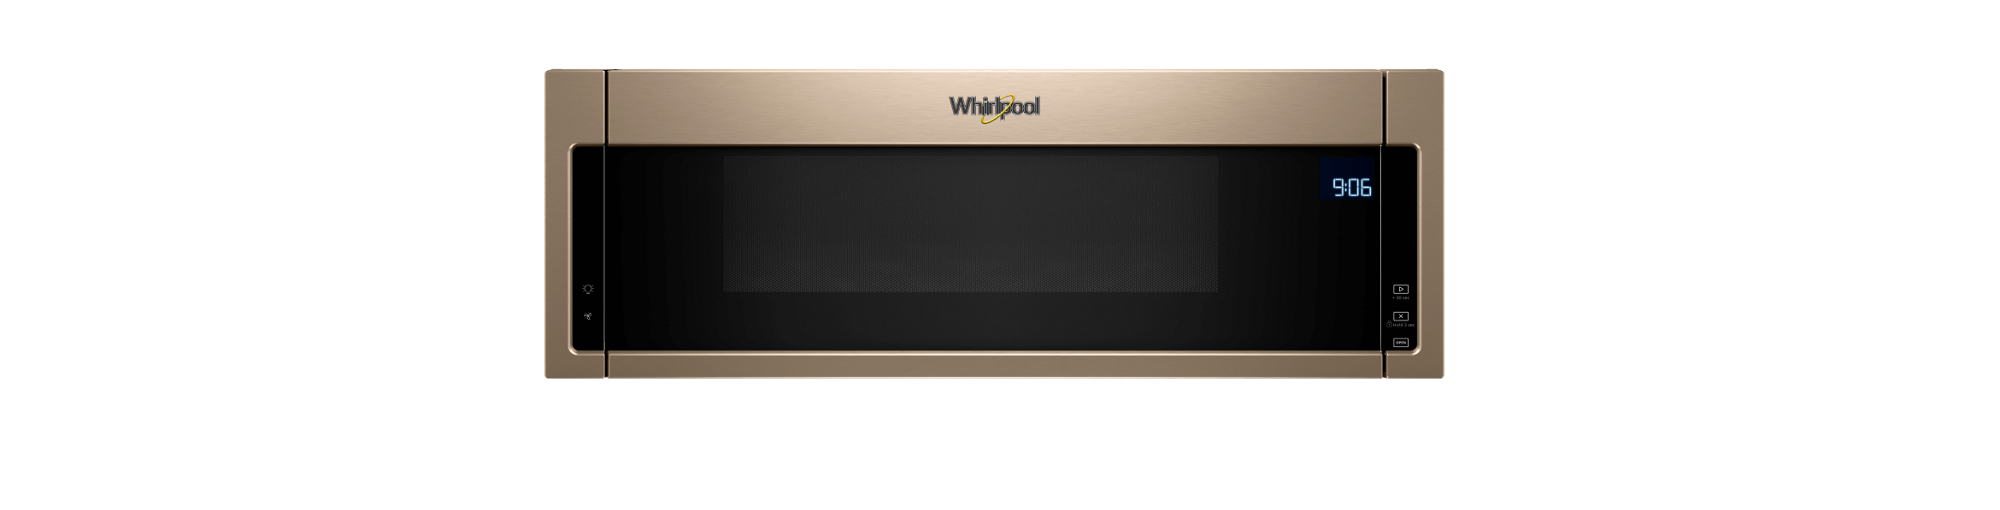 Microwave ovens from Whirlpool.